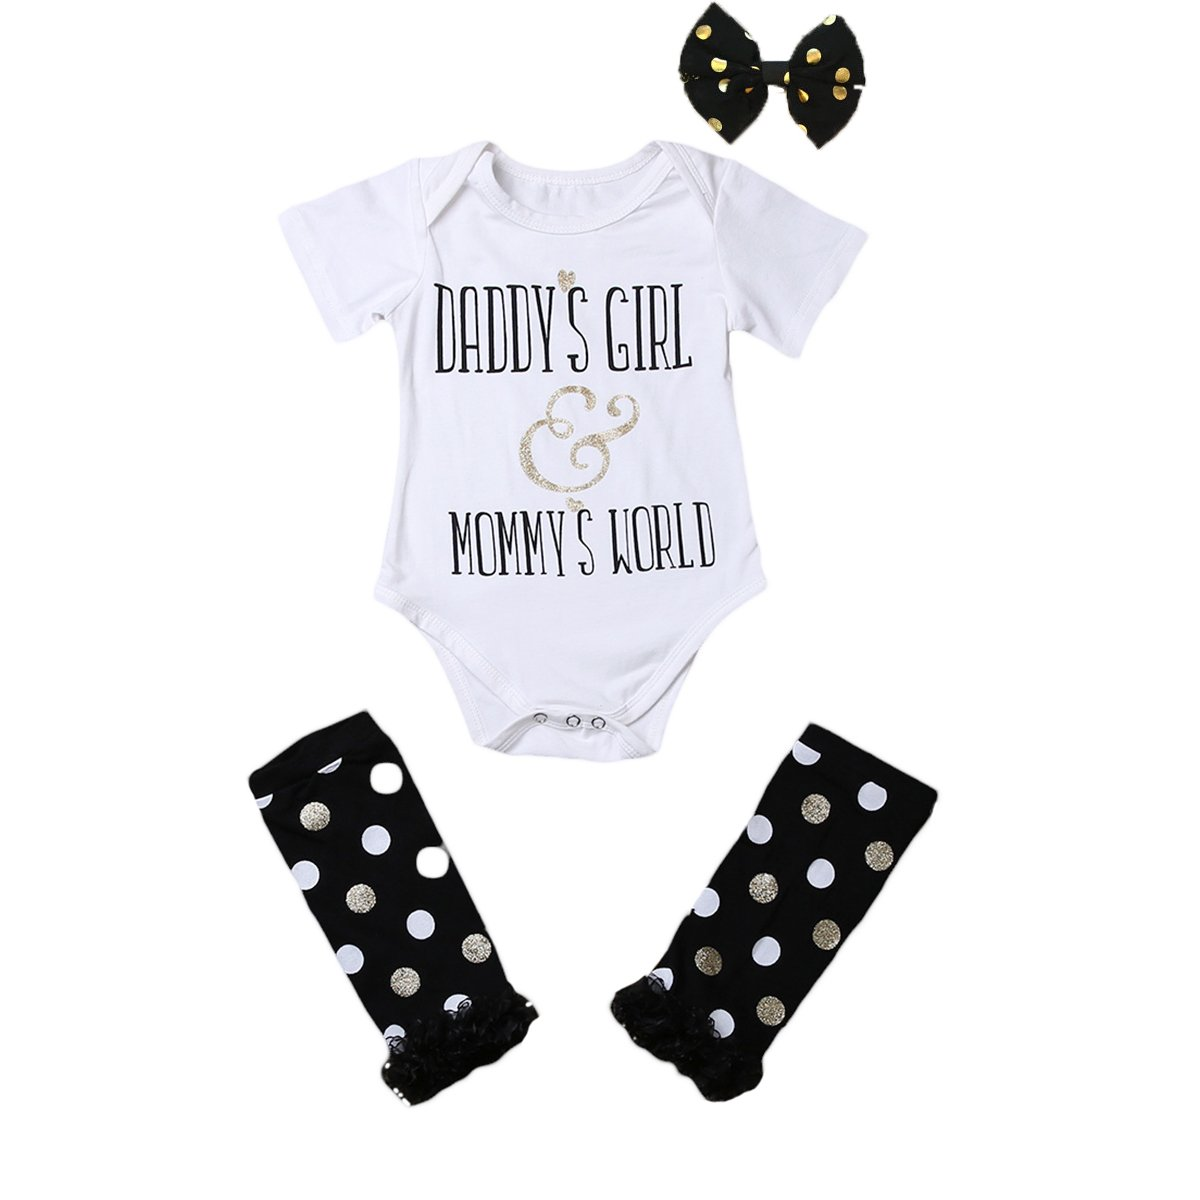 3Pcs Baby Girls Romper + Polka Dots Leg Warmers + Butterfly Bow Outfit Clothes Set